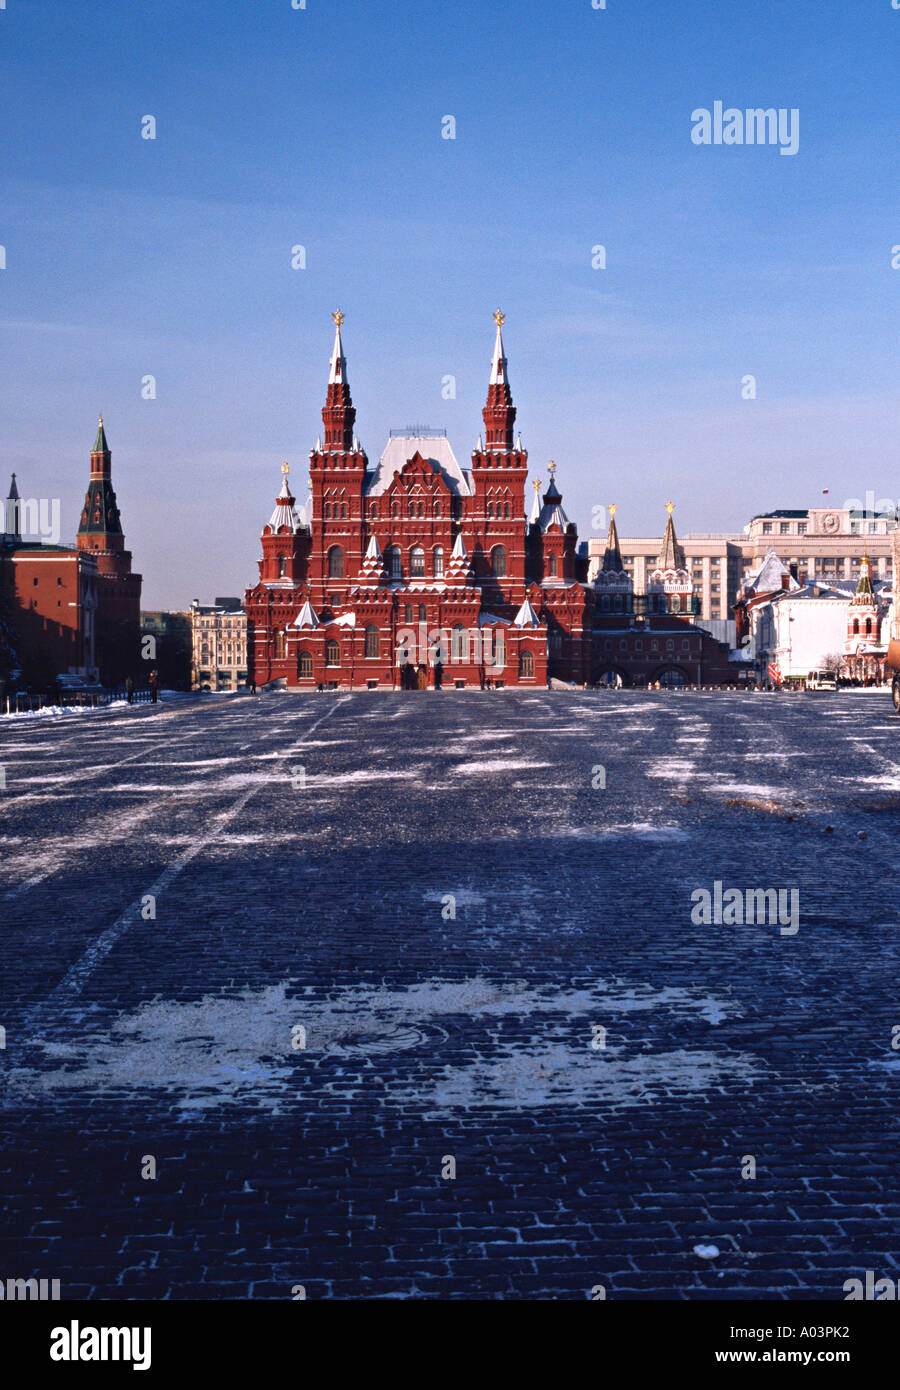 State History Museum, Red square, Moscow, Russia - Stock Image